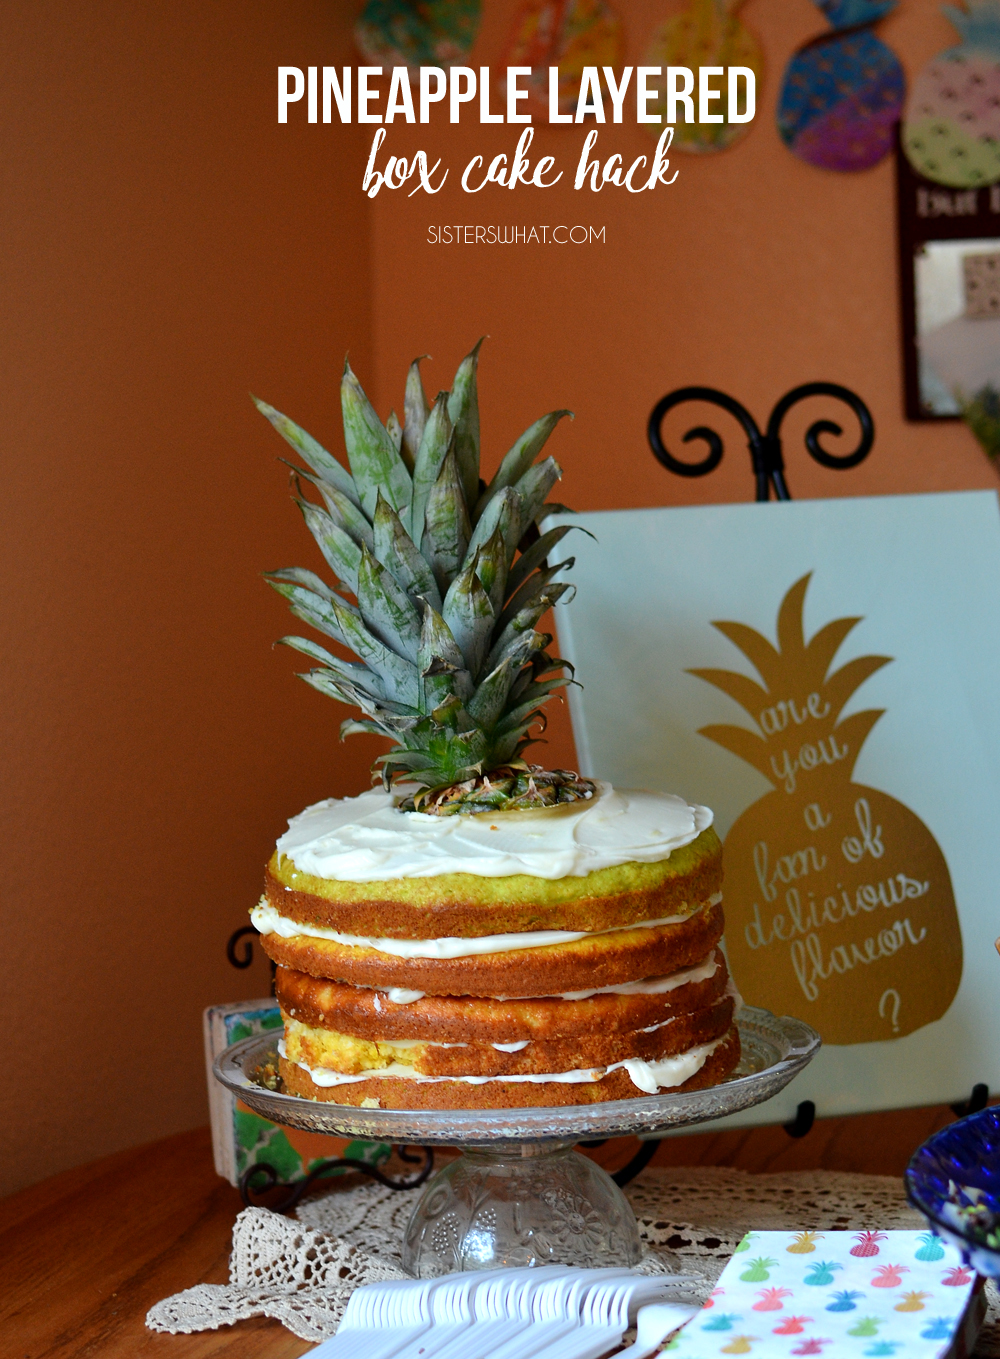 Pineapple Layered Cake Recipe from a Cake mix Sisters What